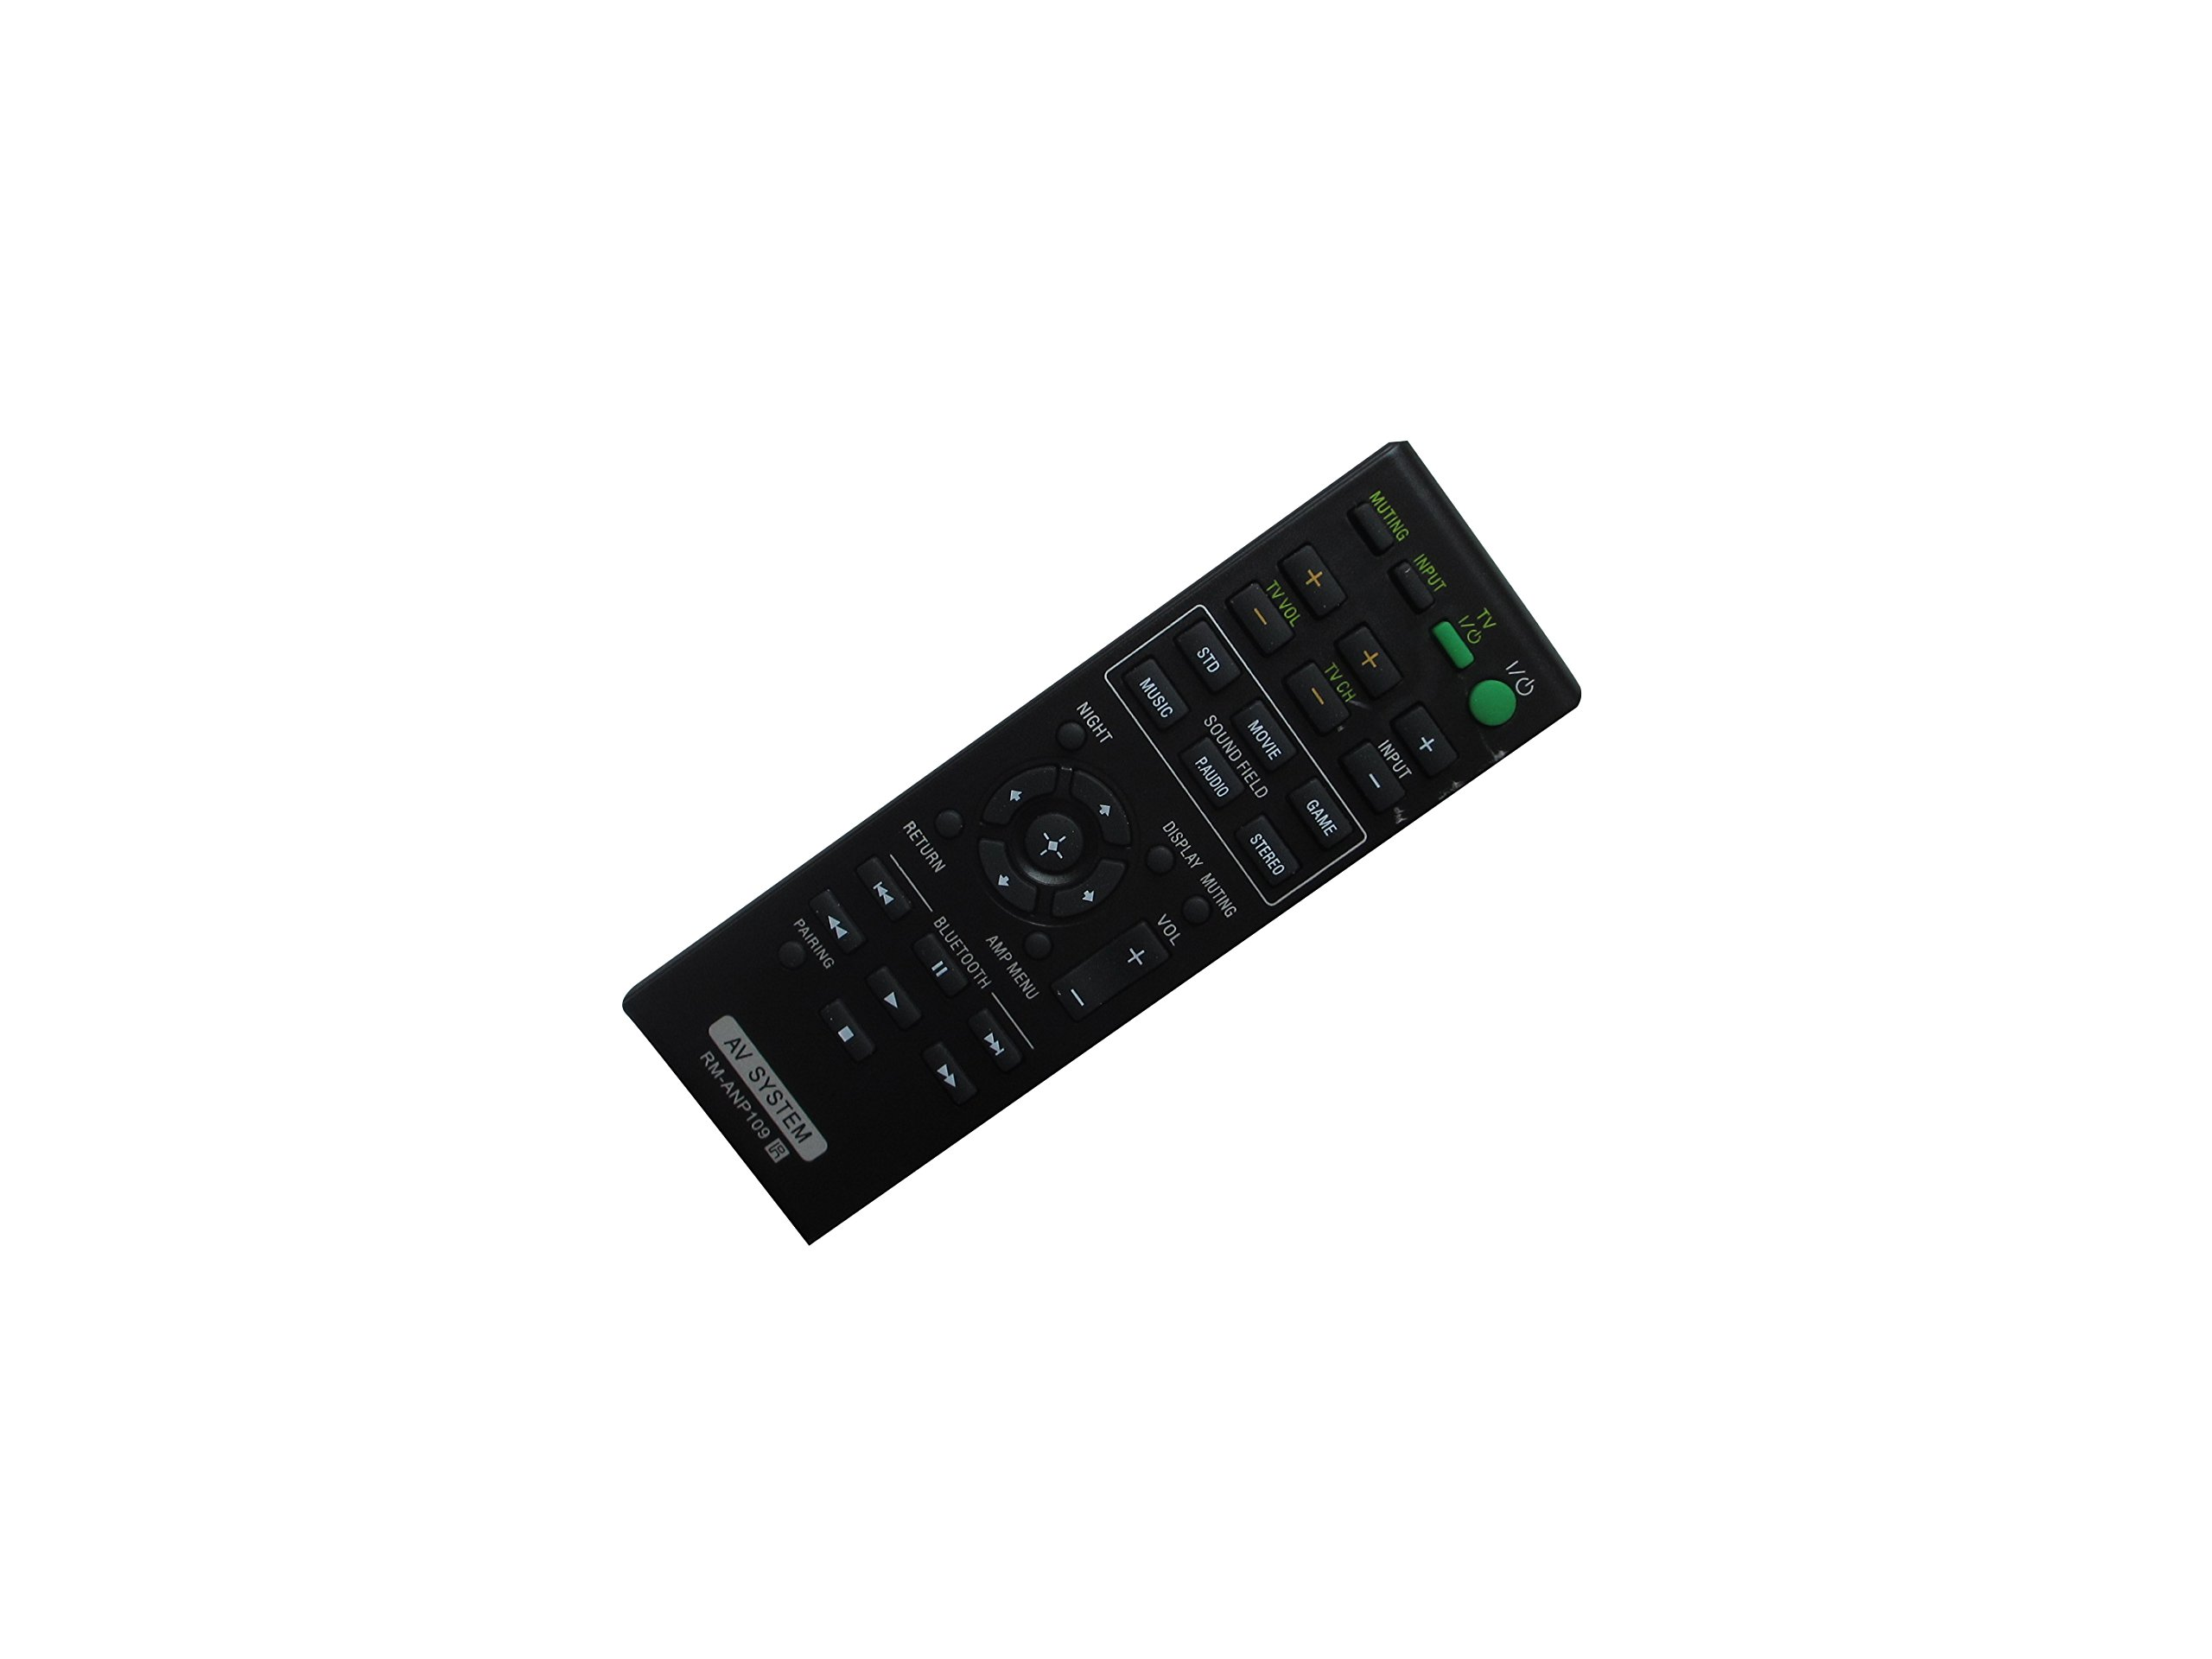 Replacement Remote Control fit for Sony RM-ANP109 RM-ANP105 149224811 2.1 Channel surround Sound Bar with Wireless Subwoofer Home Theater System by HCDZ